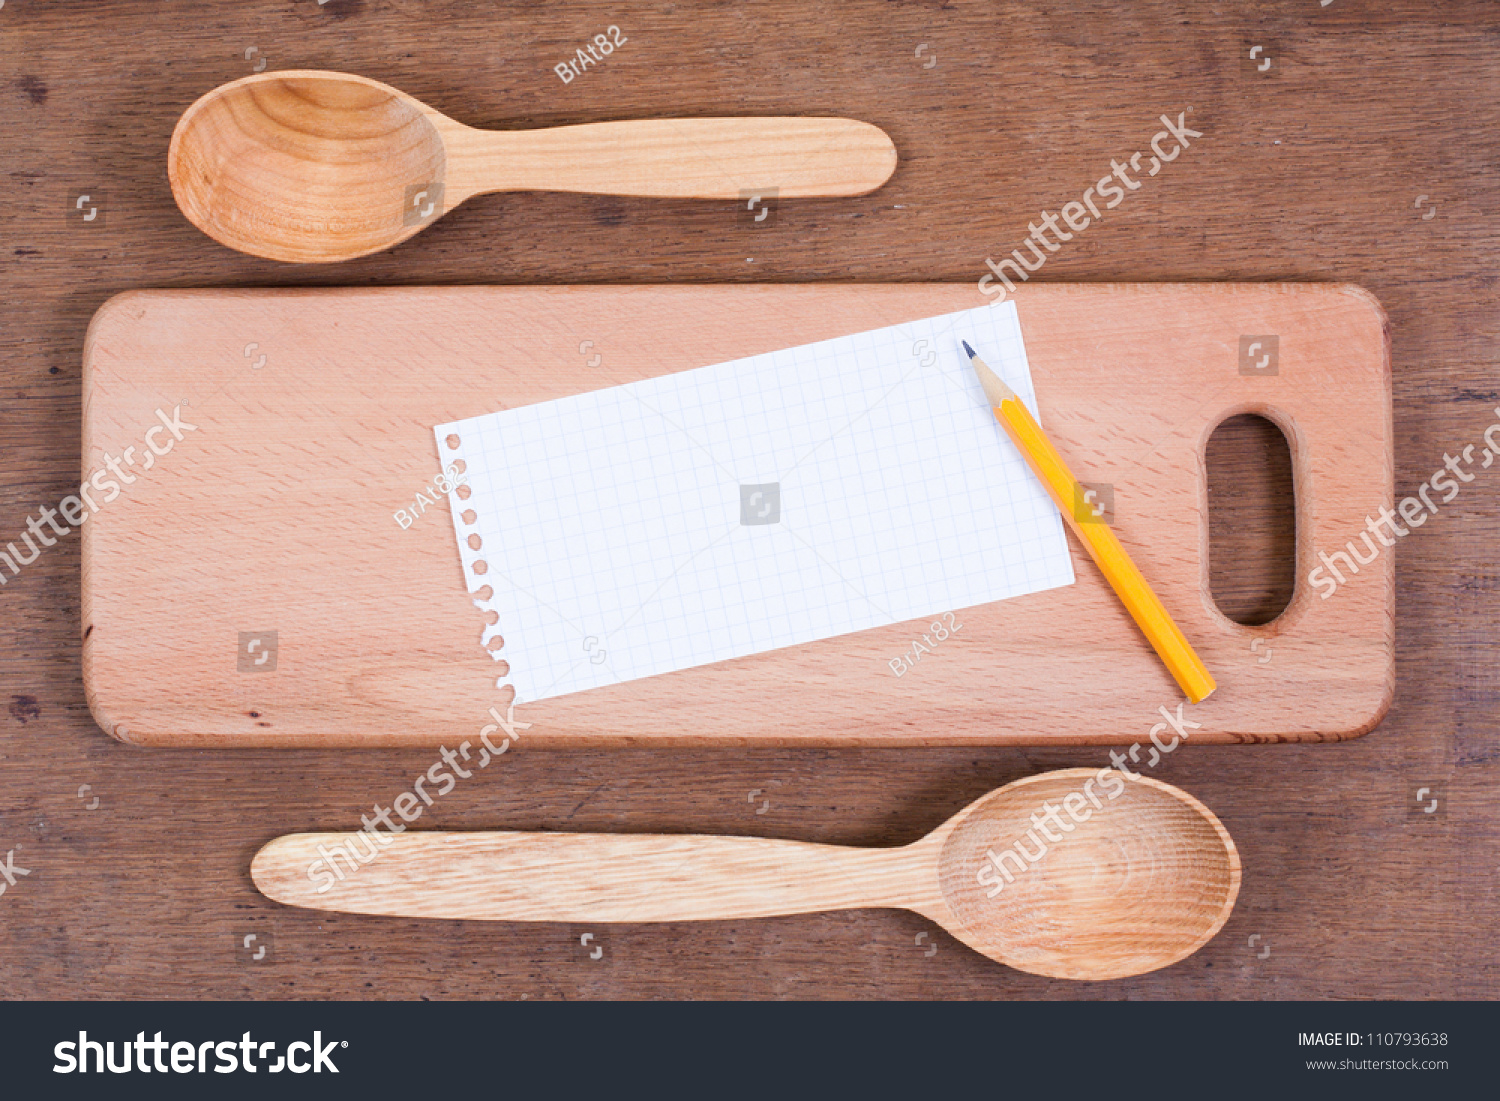 Wooden Spoons On Oak Wood Table Stock Photo (Edit Now